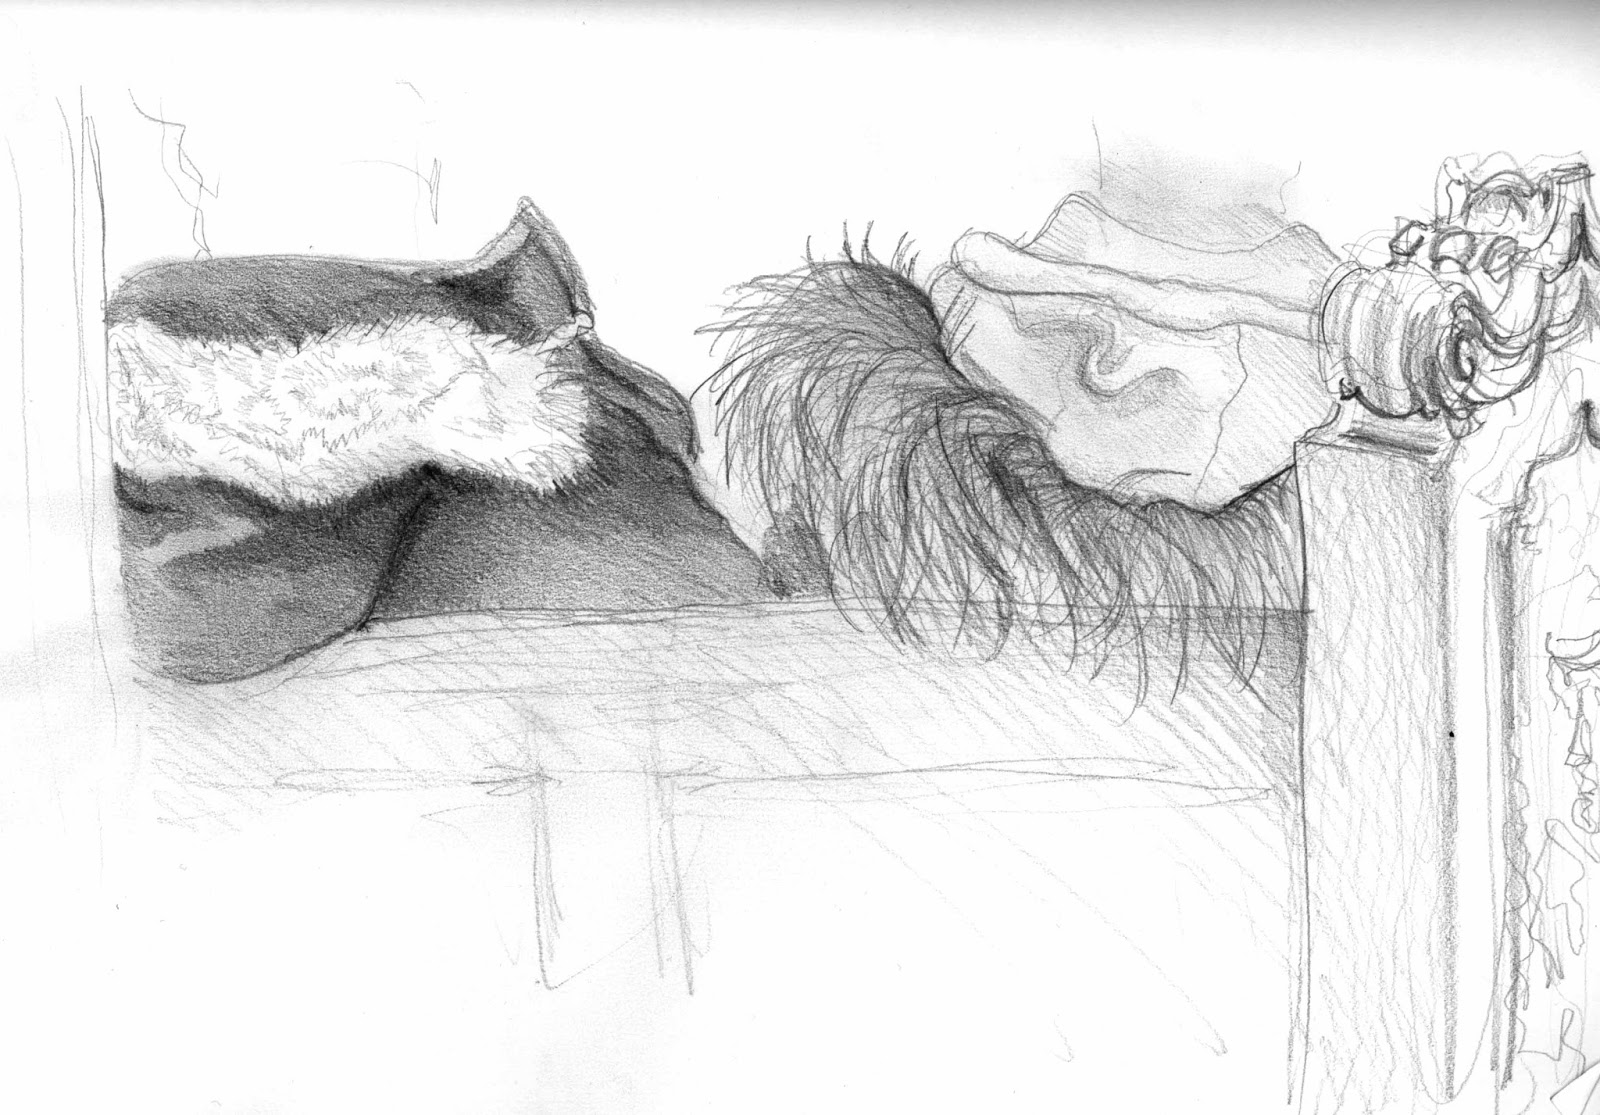 Sketch by Isobel Williams, R v Jogee, www.isobelwilliams.blogspot.co.uk